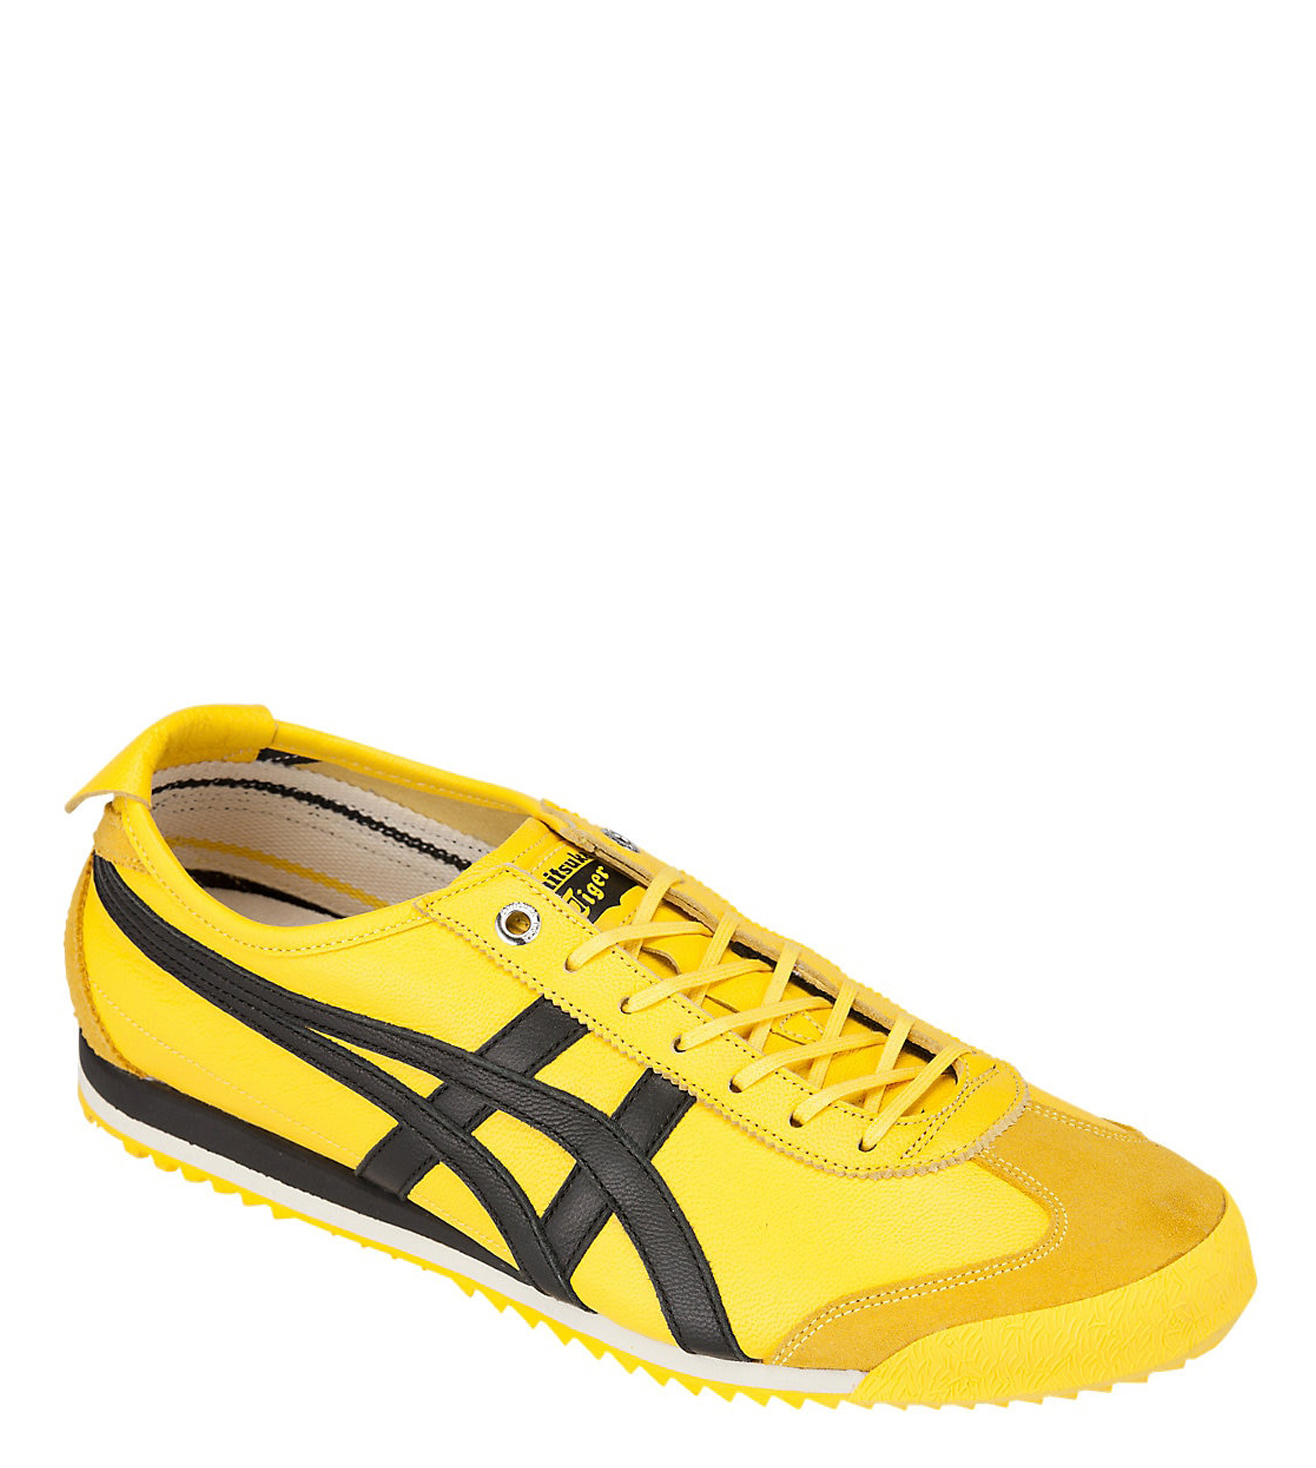 onitsuka tiger mexico 66 sd yellow vests